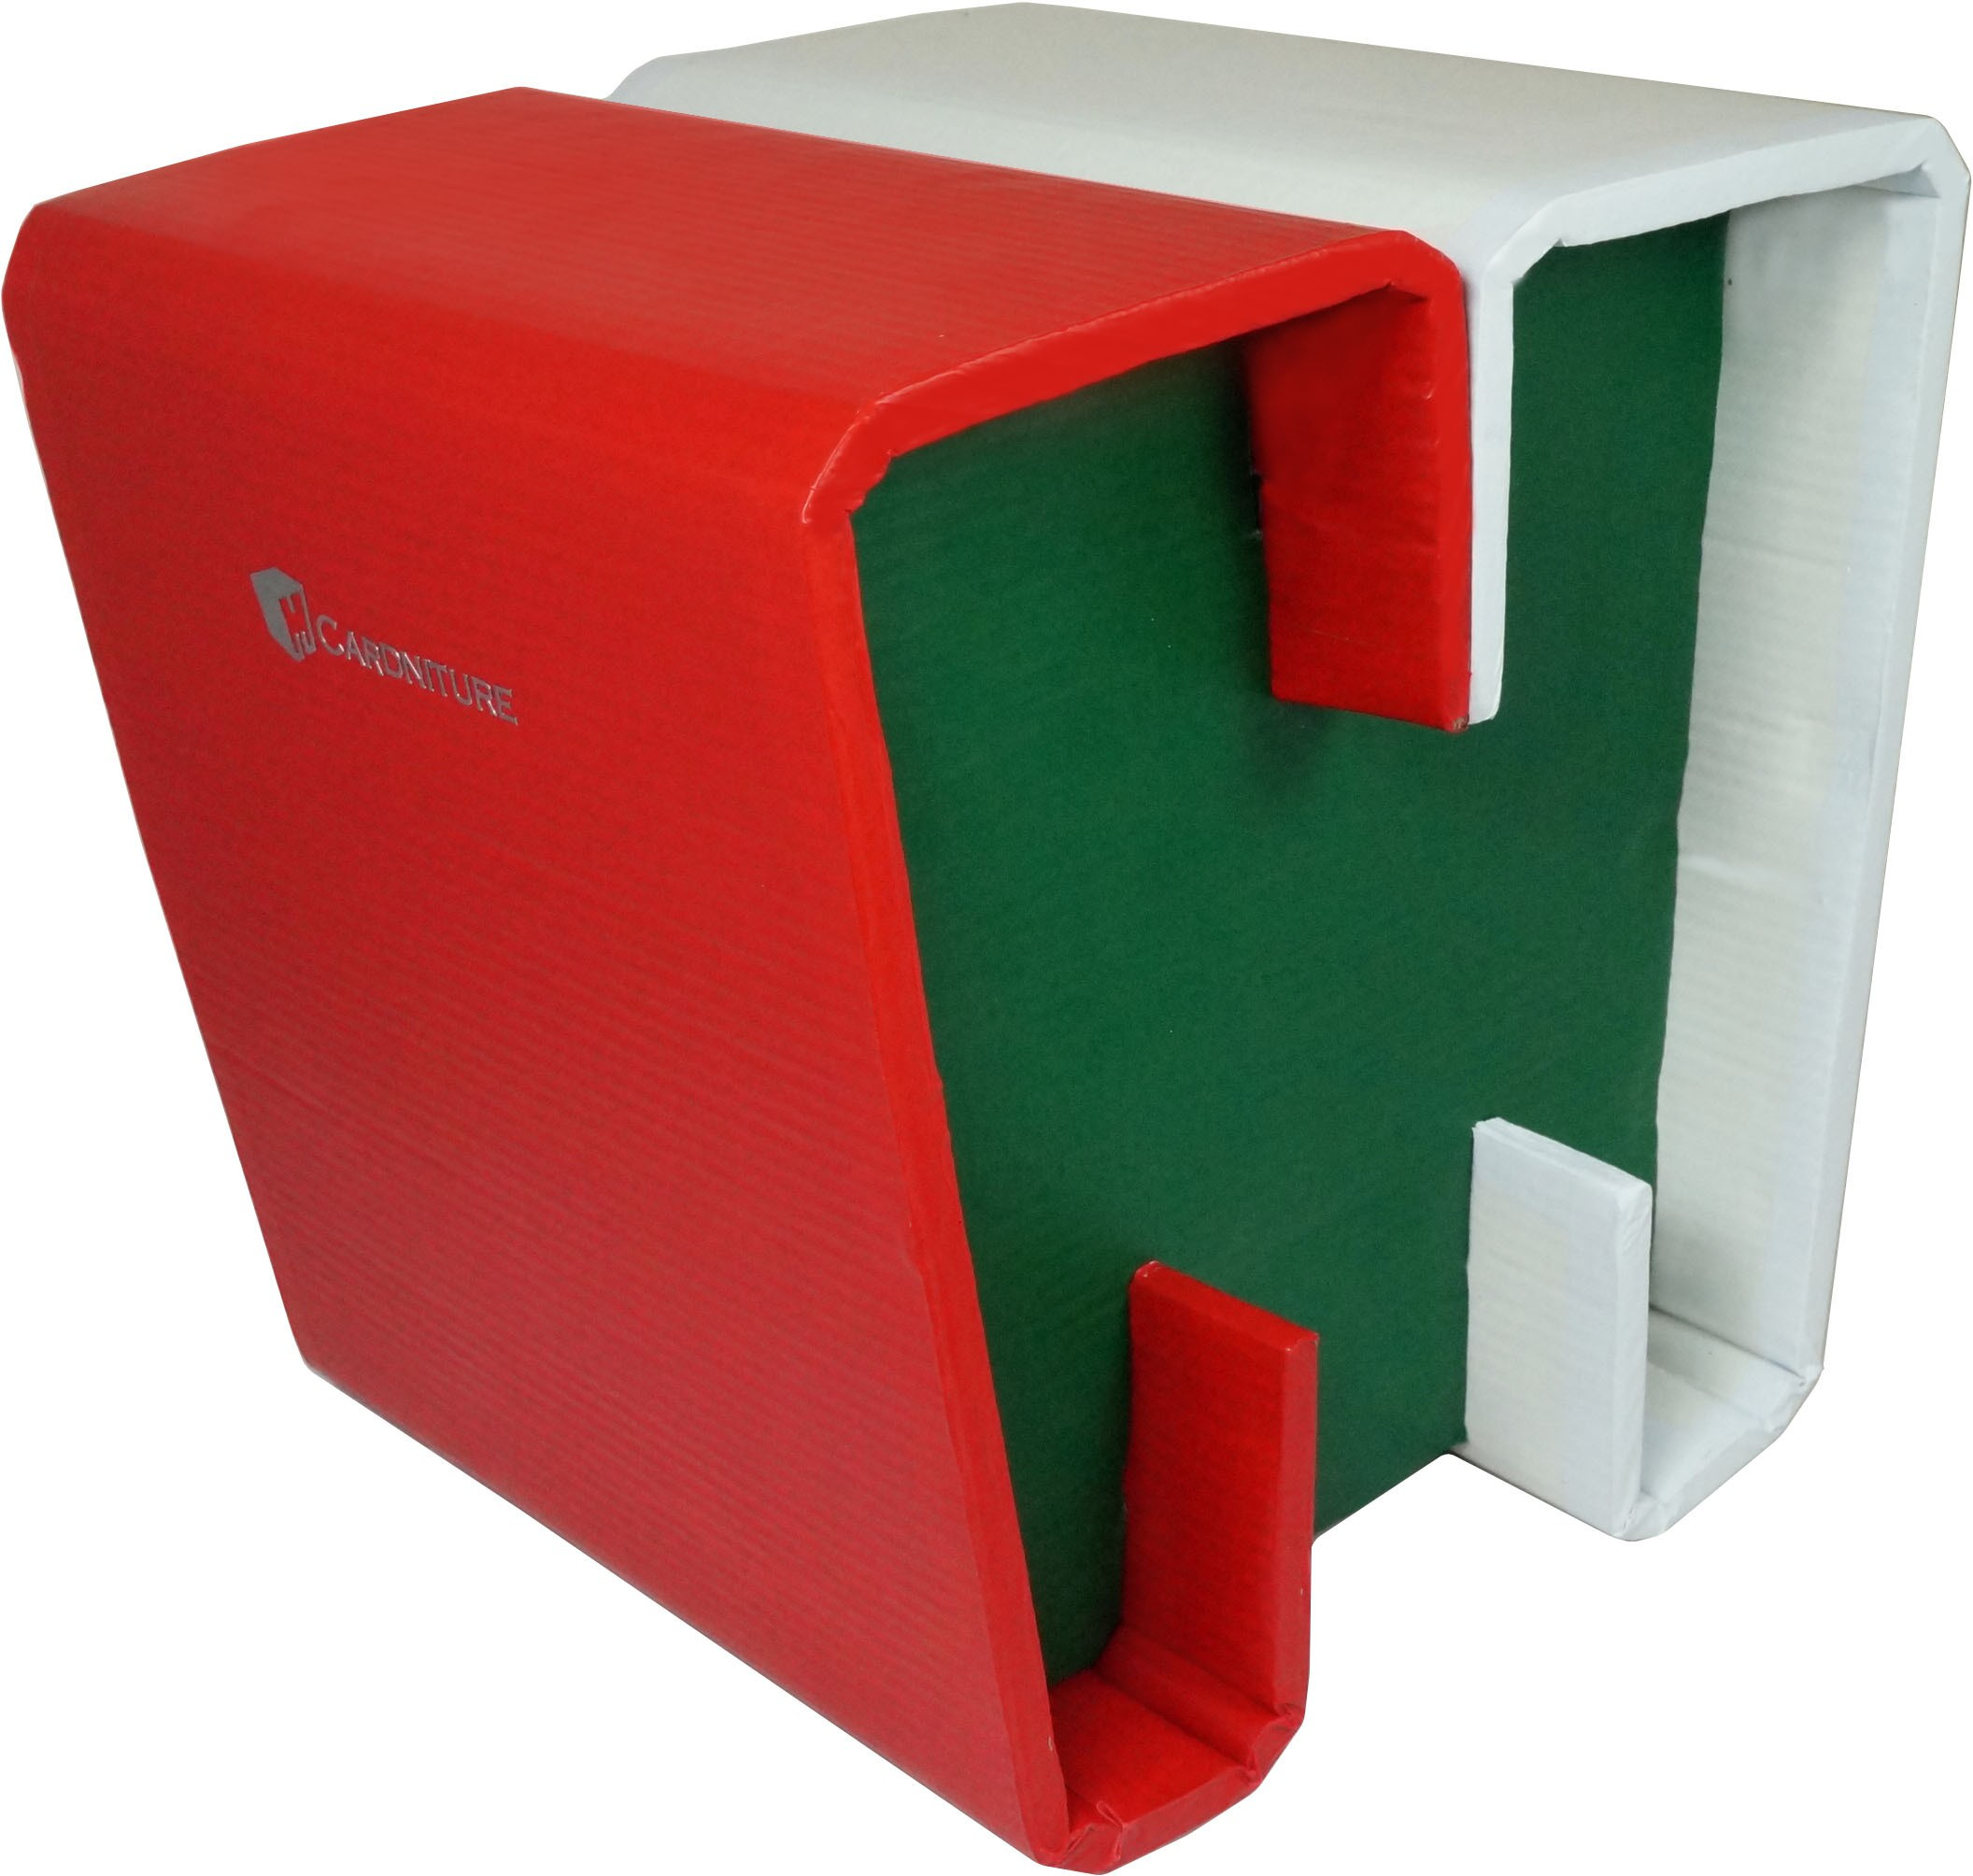 View Cardniture ZING Living & Bedroom Stool(Red, Green, White) Furniture (Cardniture)